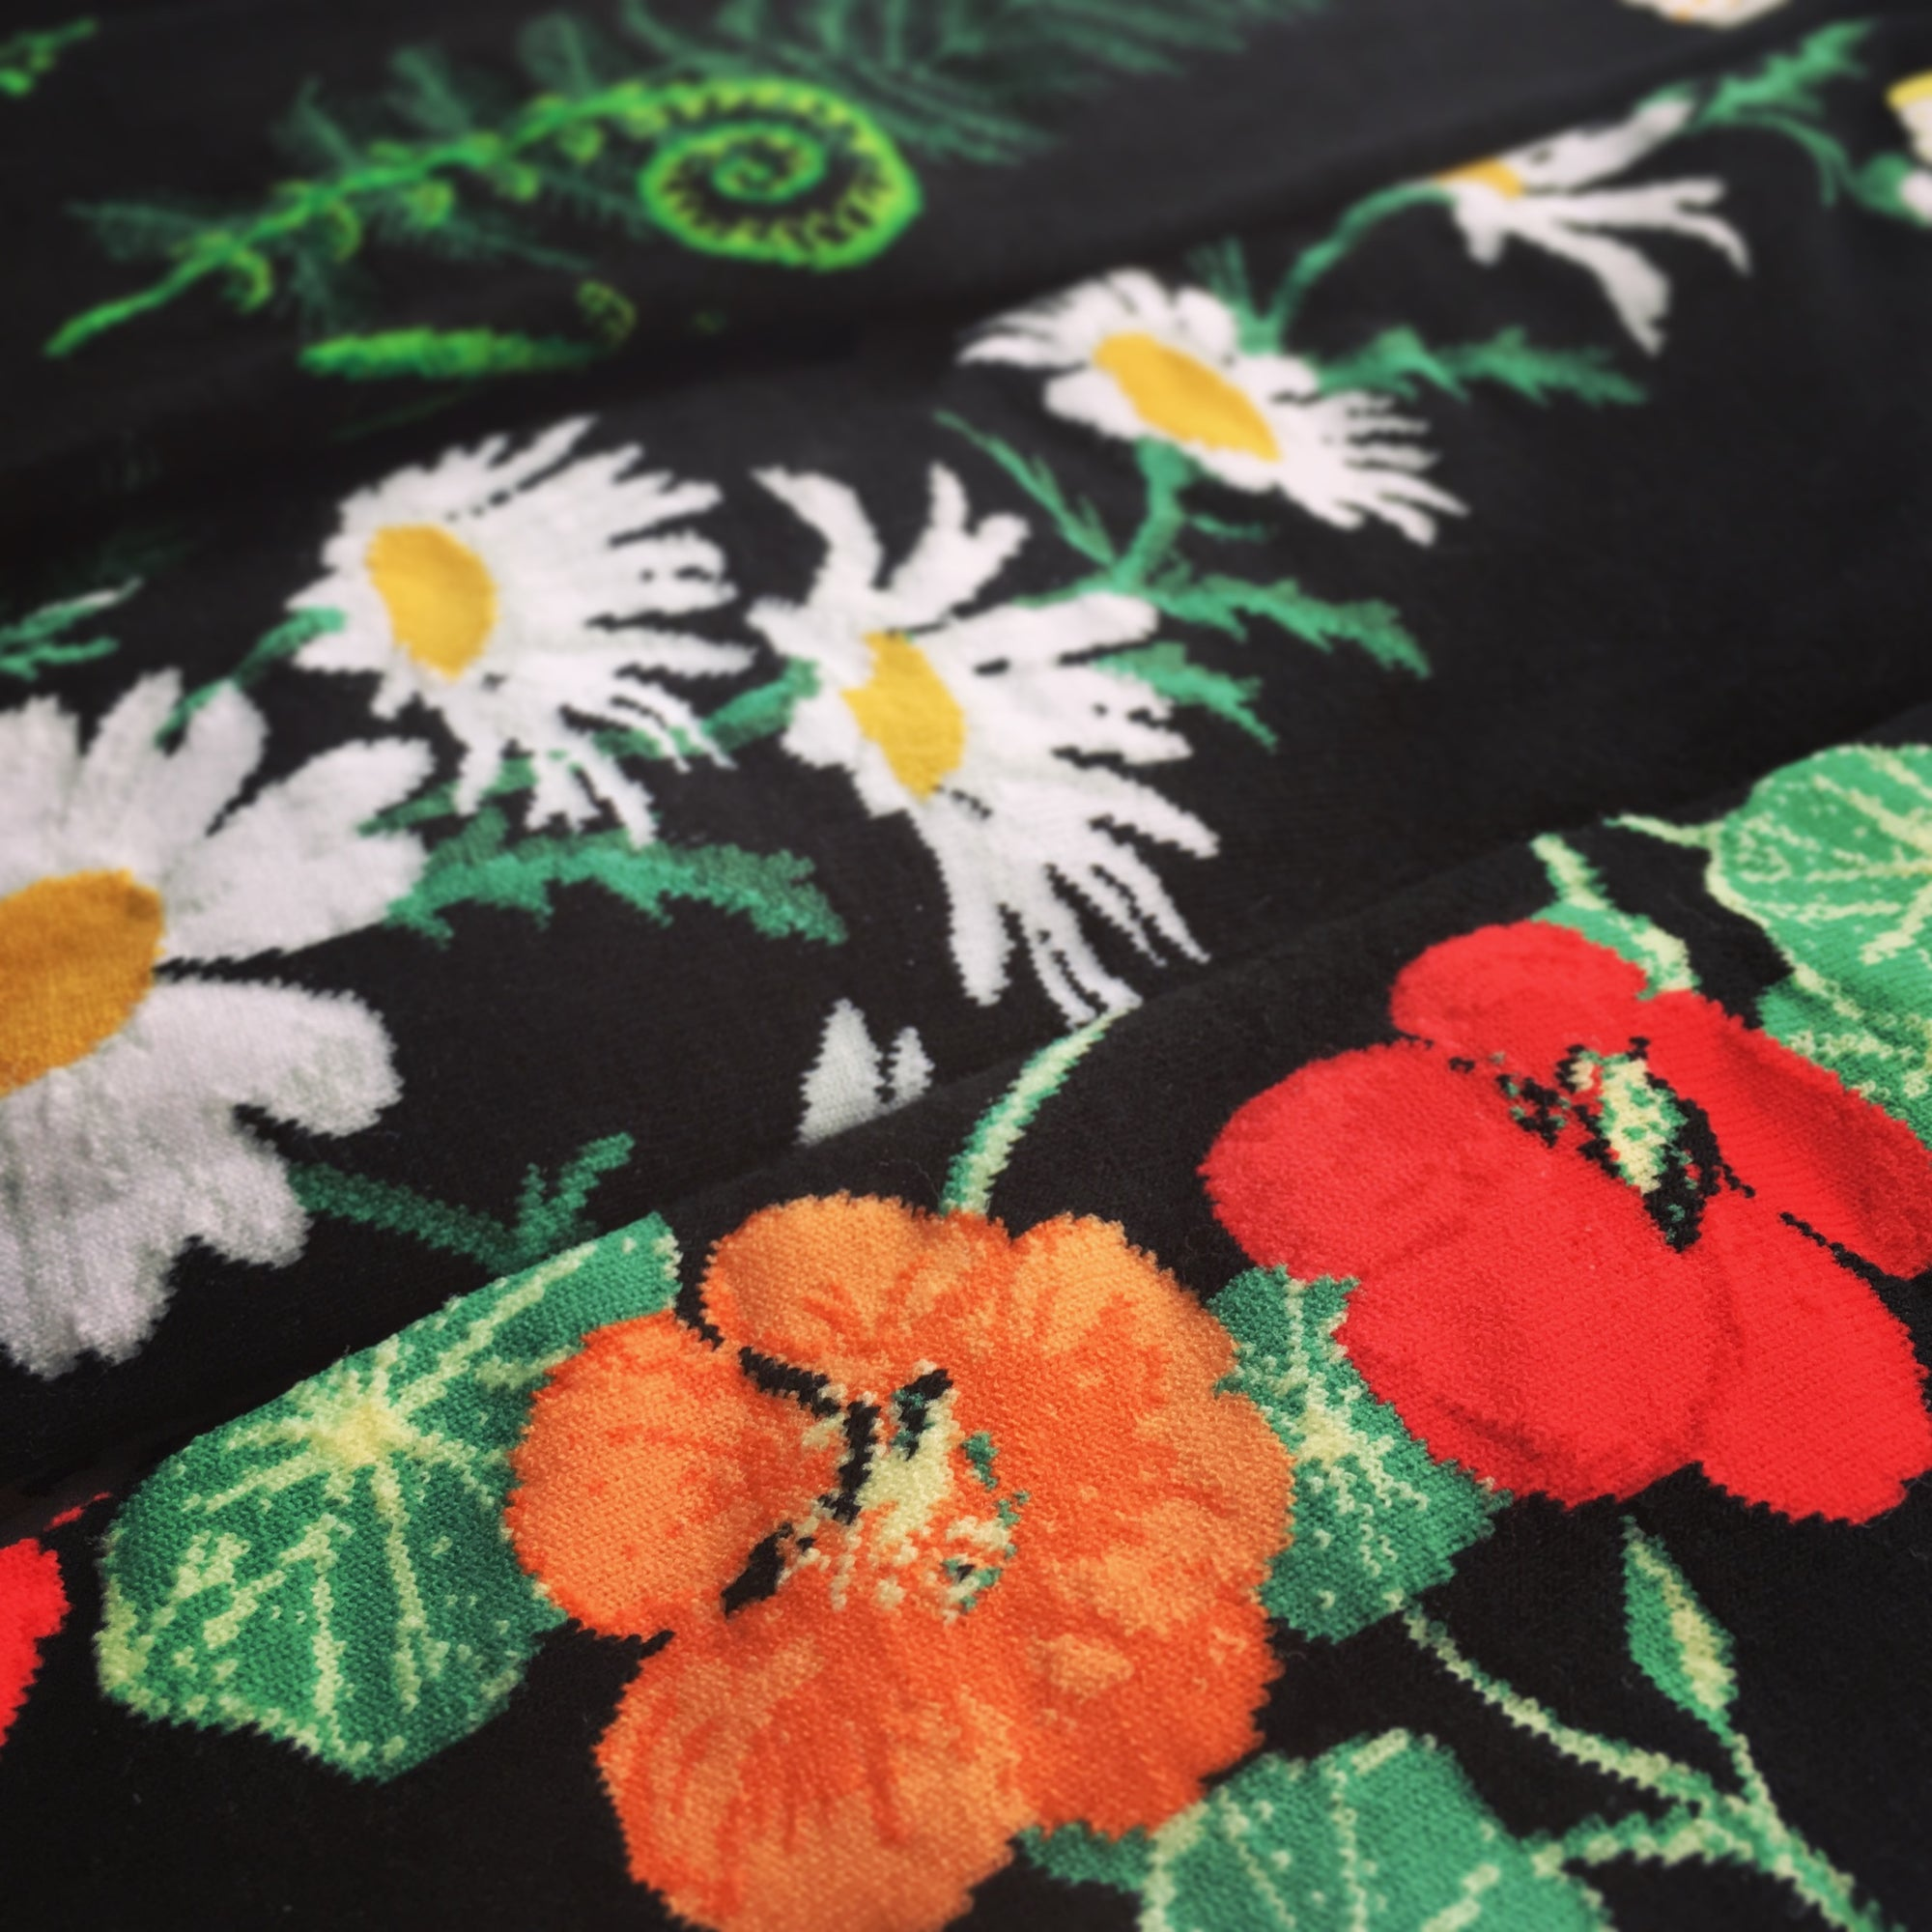 This Flower Garden Collection shows off garden and plant themed socks, including these 3 ModSocks knee highs that have black backgrounds. The front shows off red and orange nasturtiums, the 2nd white and yellow daisies, the 3rd green ferns and fiddleheads